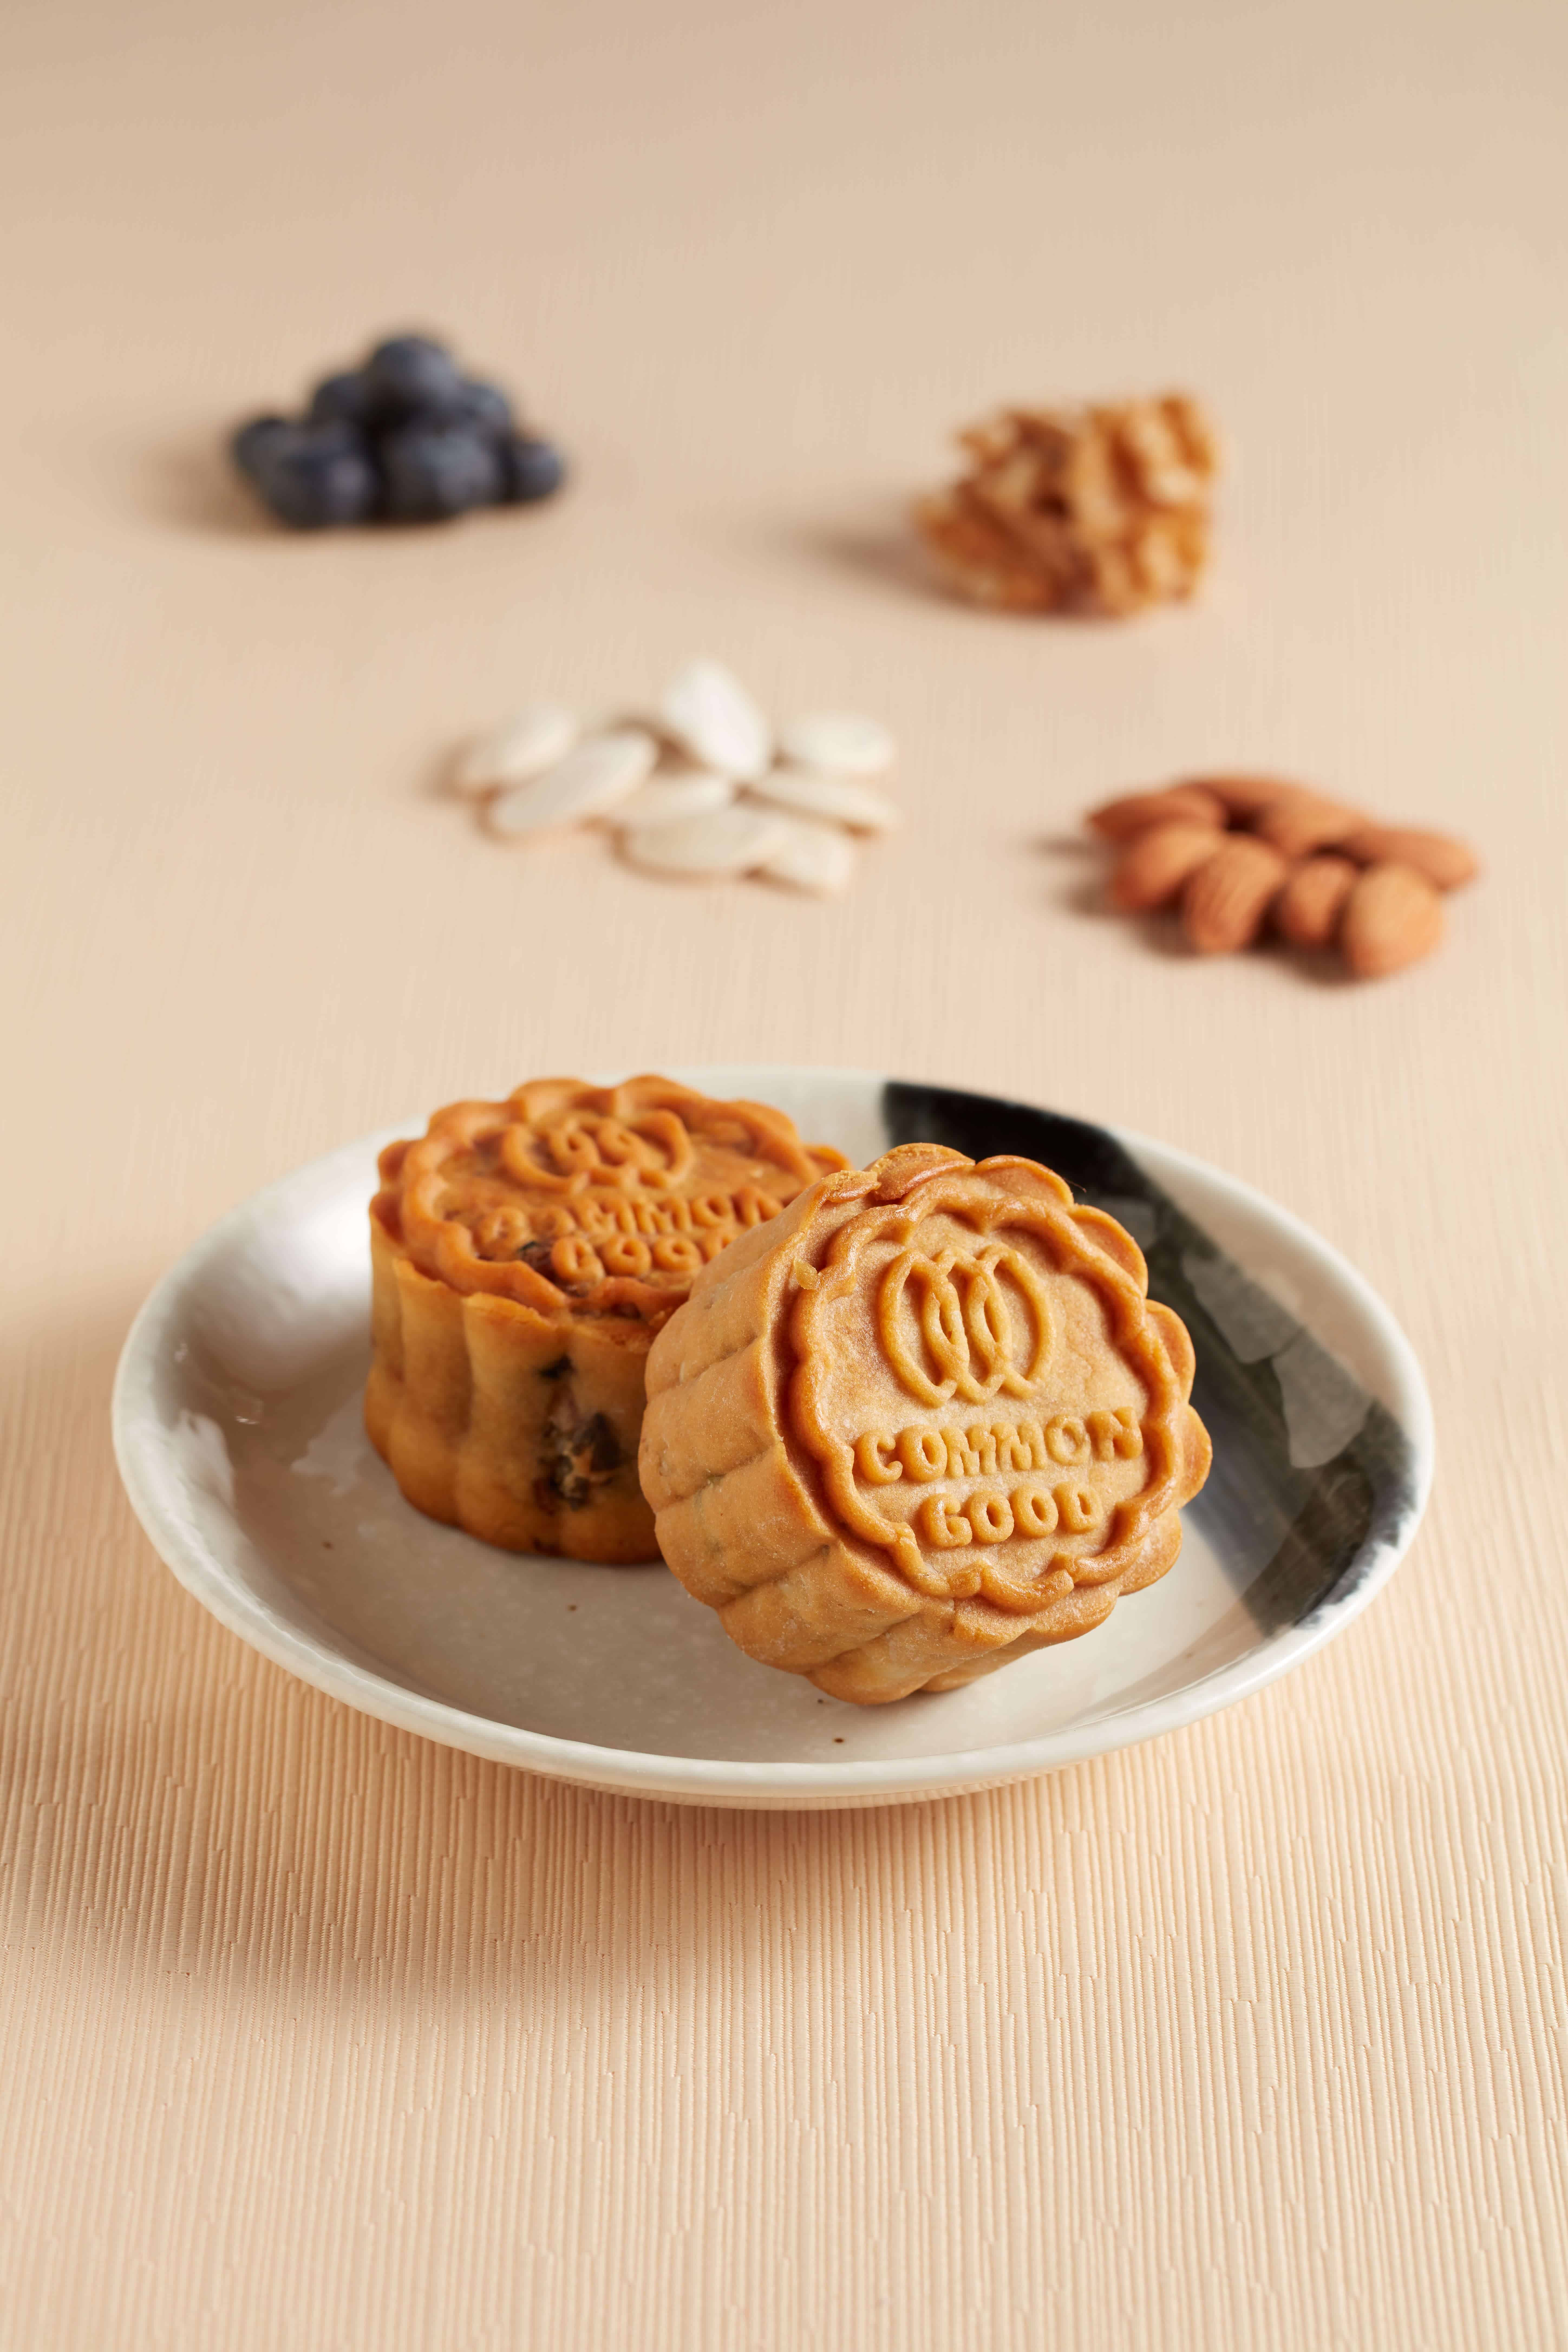 Green Common Blueberry Mixed Nuts Mooncake_1